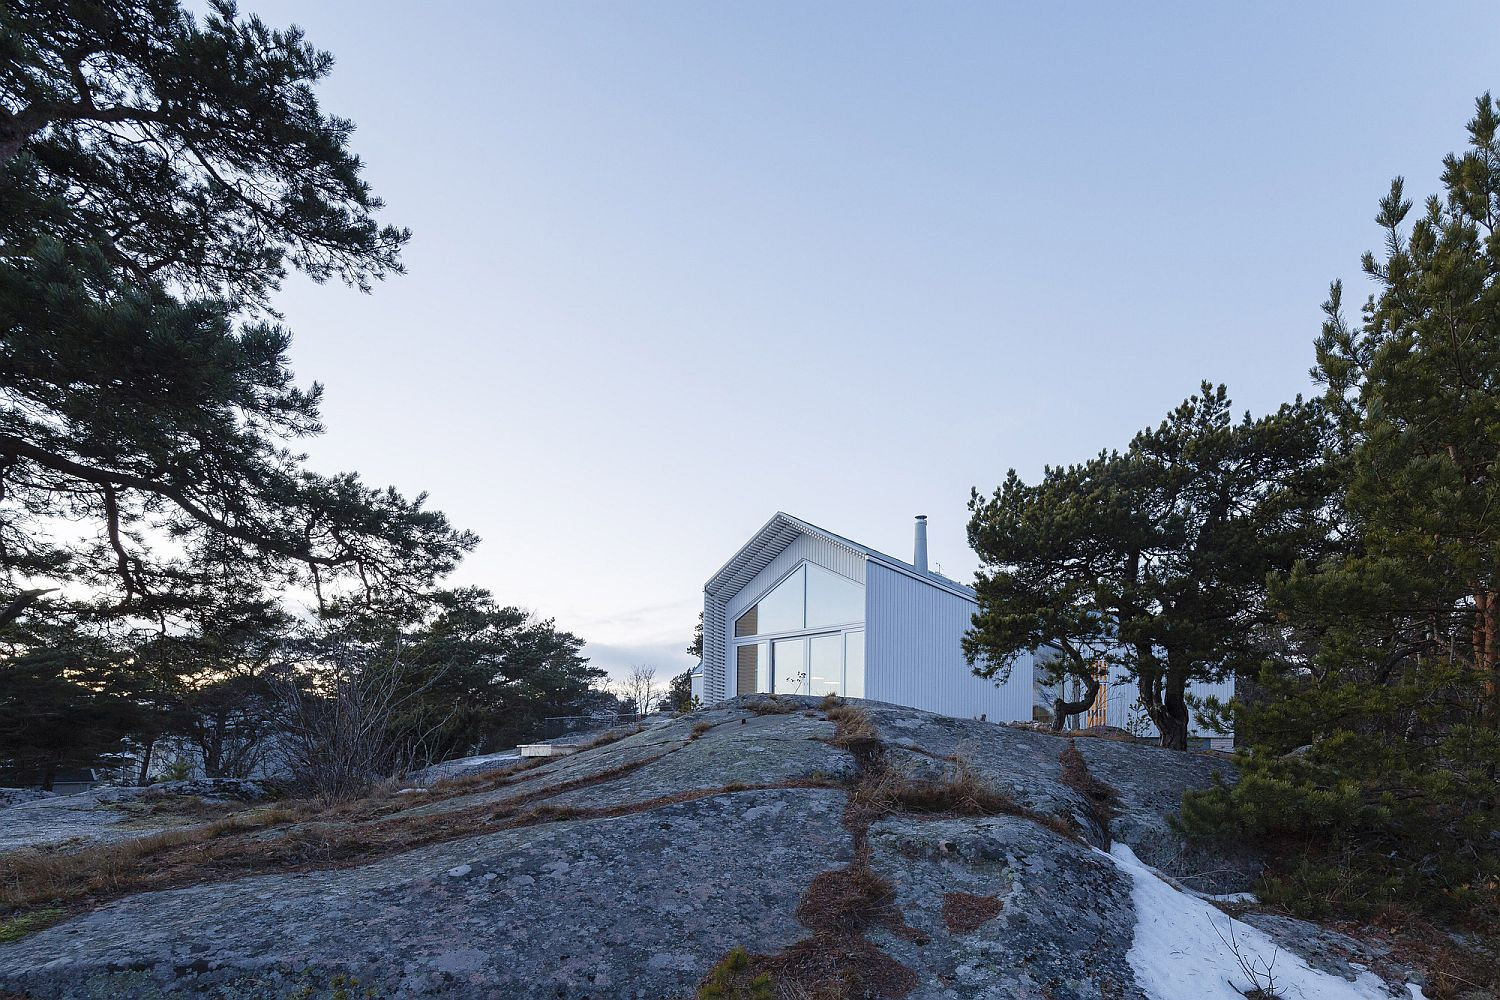 Bedrock provides stability and a unique landscape for the Finnish home